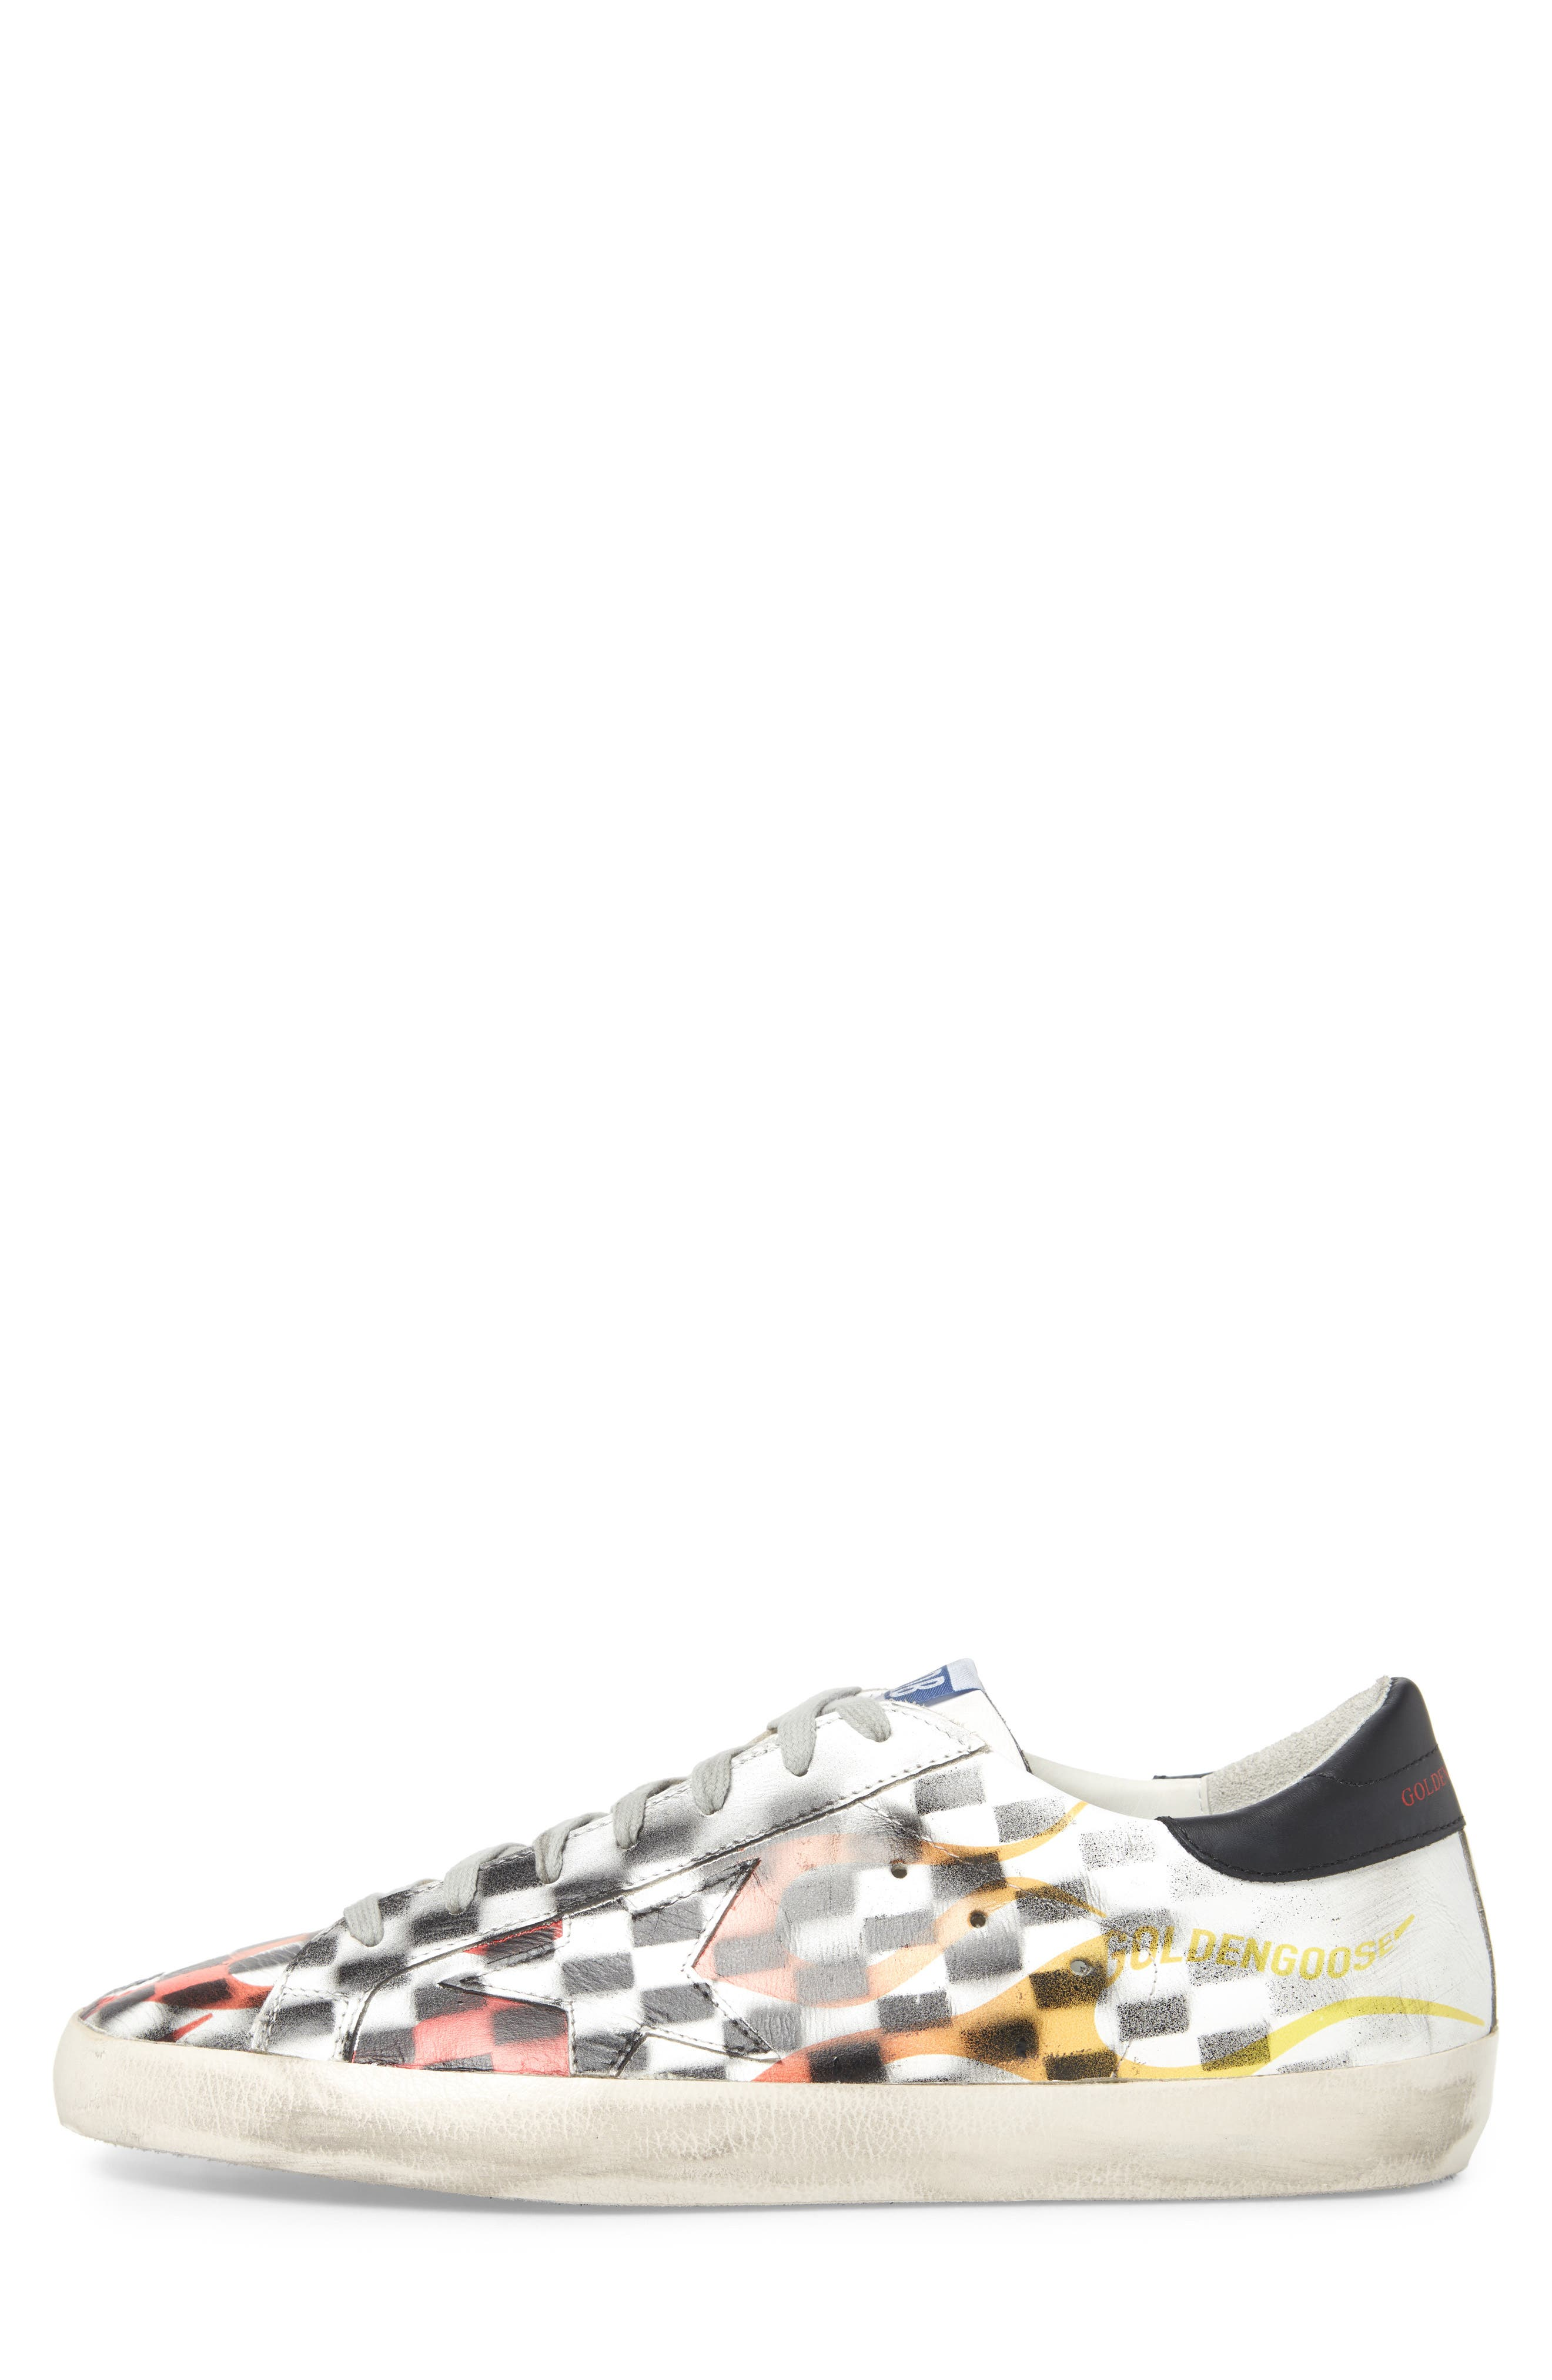 Superstar Low Top Sneaker,                             Alternate thumbnail 3, color,                             WHITE FLAME DAMA